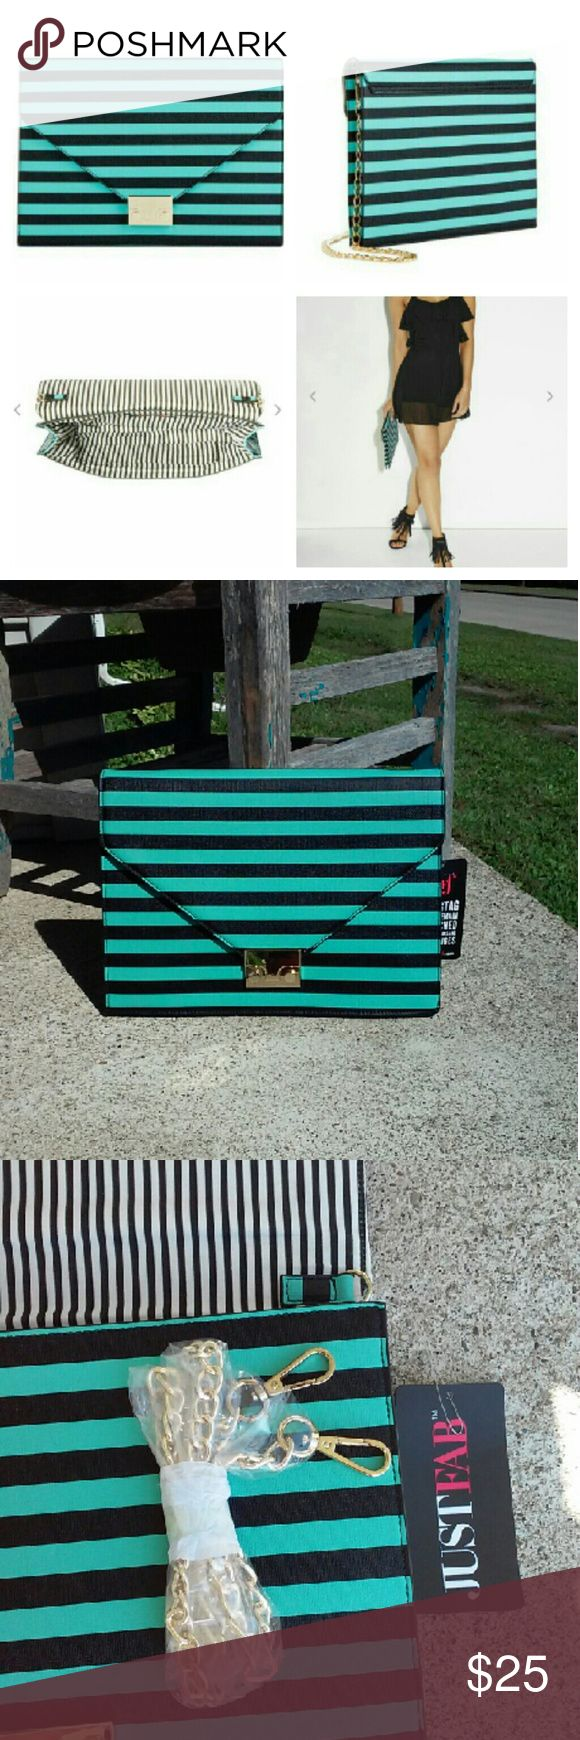 "JustFab hamiltonn nautical clutch. Justfab green and black striped hamiltonn nautical clutch. Front metal hardware closure and a chic shoulder strap.  Approximately 12""x9"" JustFab Bags Clutches & Wristlets"